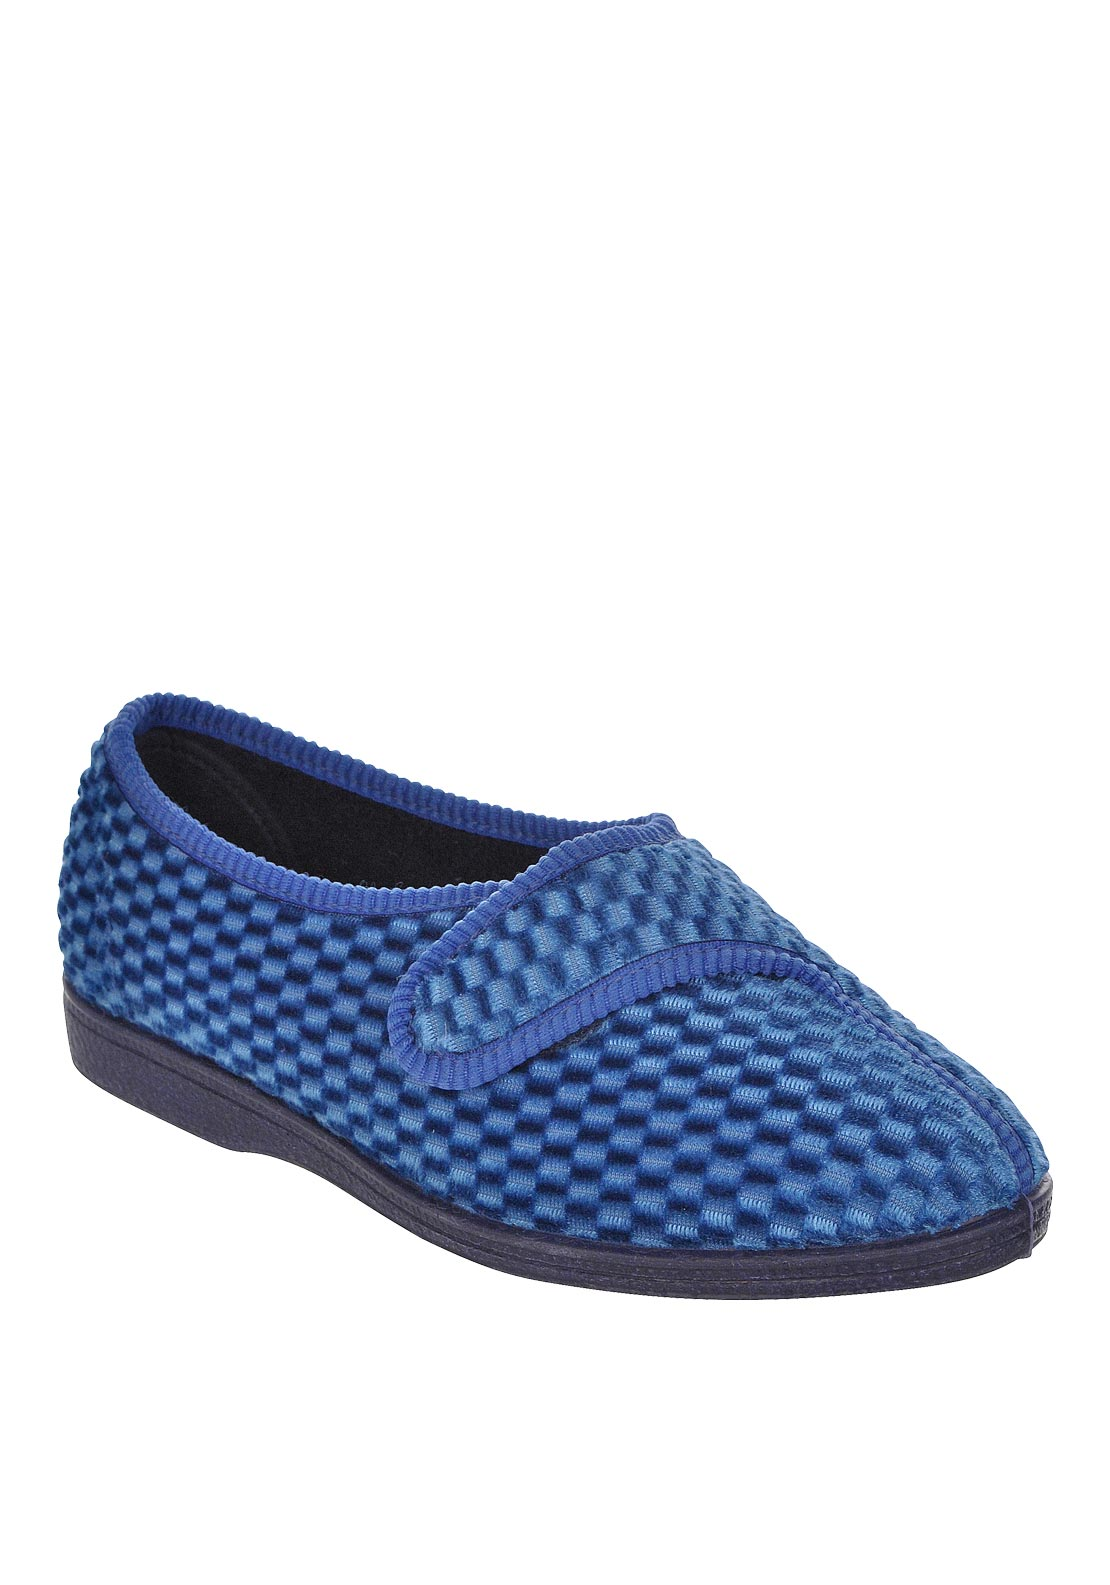 Lotus Womens Nestas Quilted Velcro Slippers, Blue